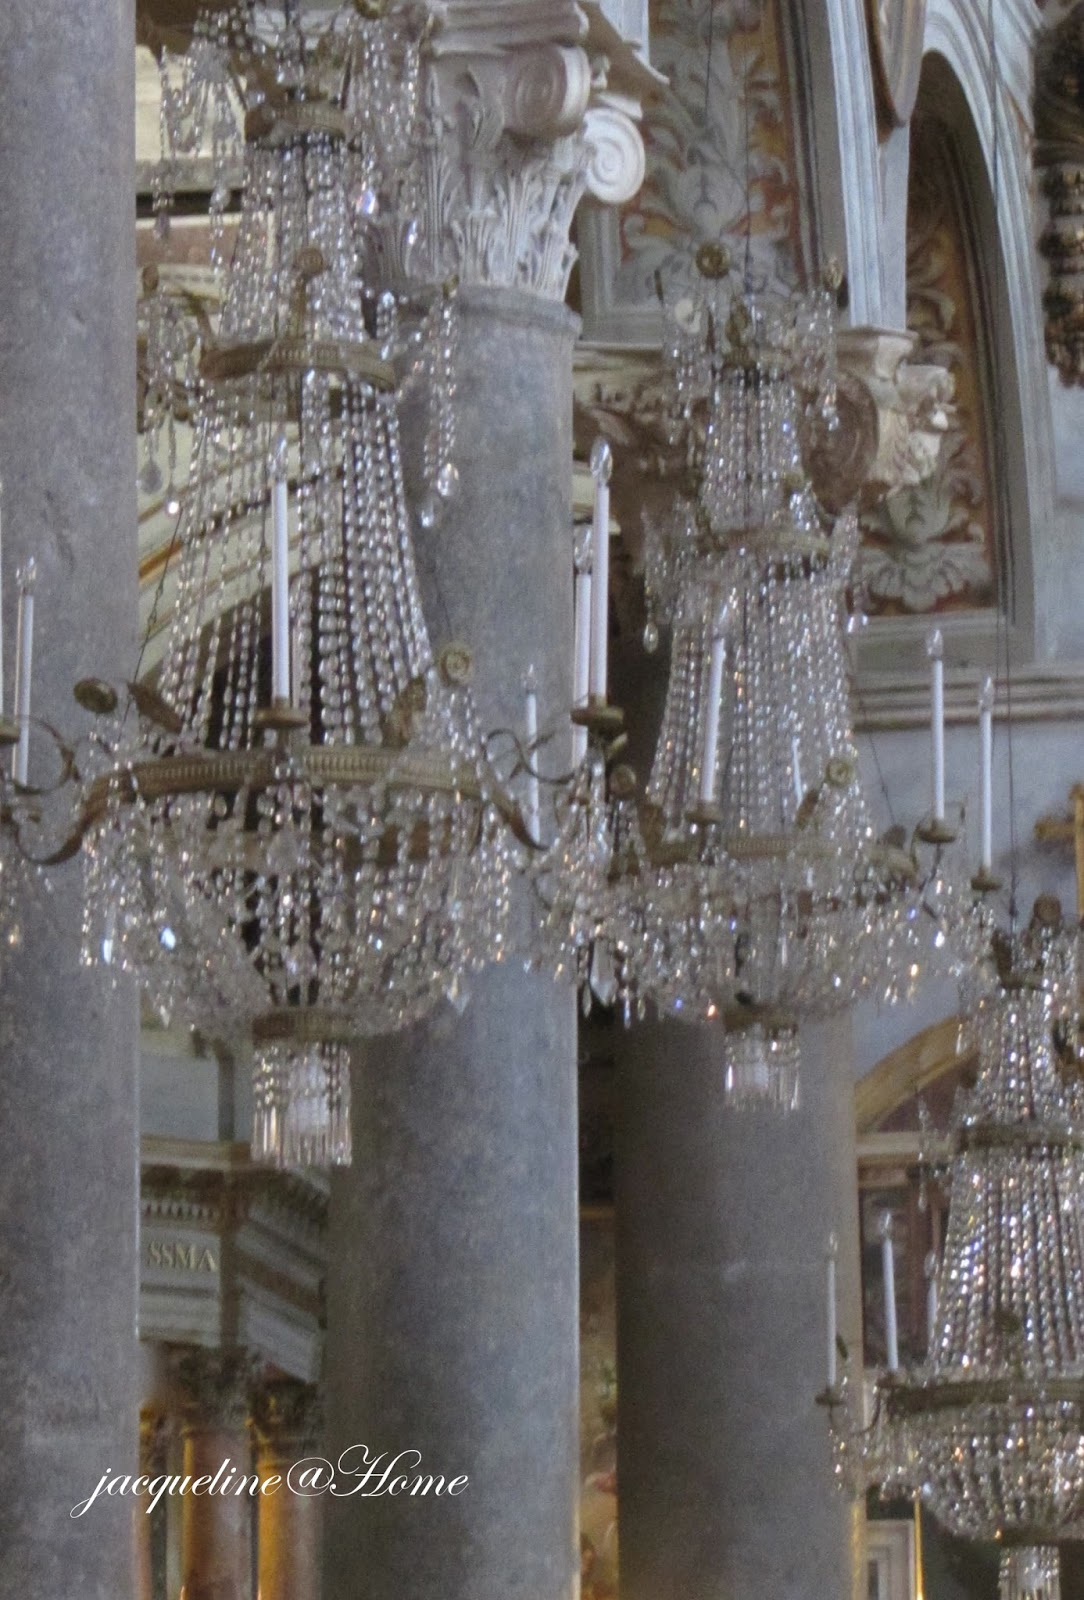 Church Of Santa Maria In Aracoeli Rome Sparkling Chandeliers As Far The Eye Can See A Beautiful Sight They Hang From Every Arch